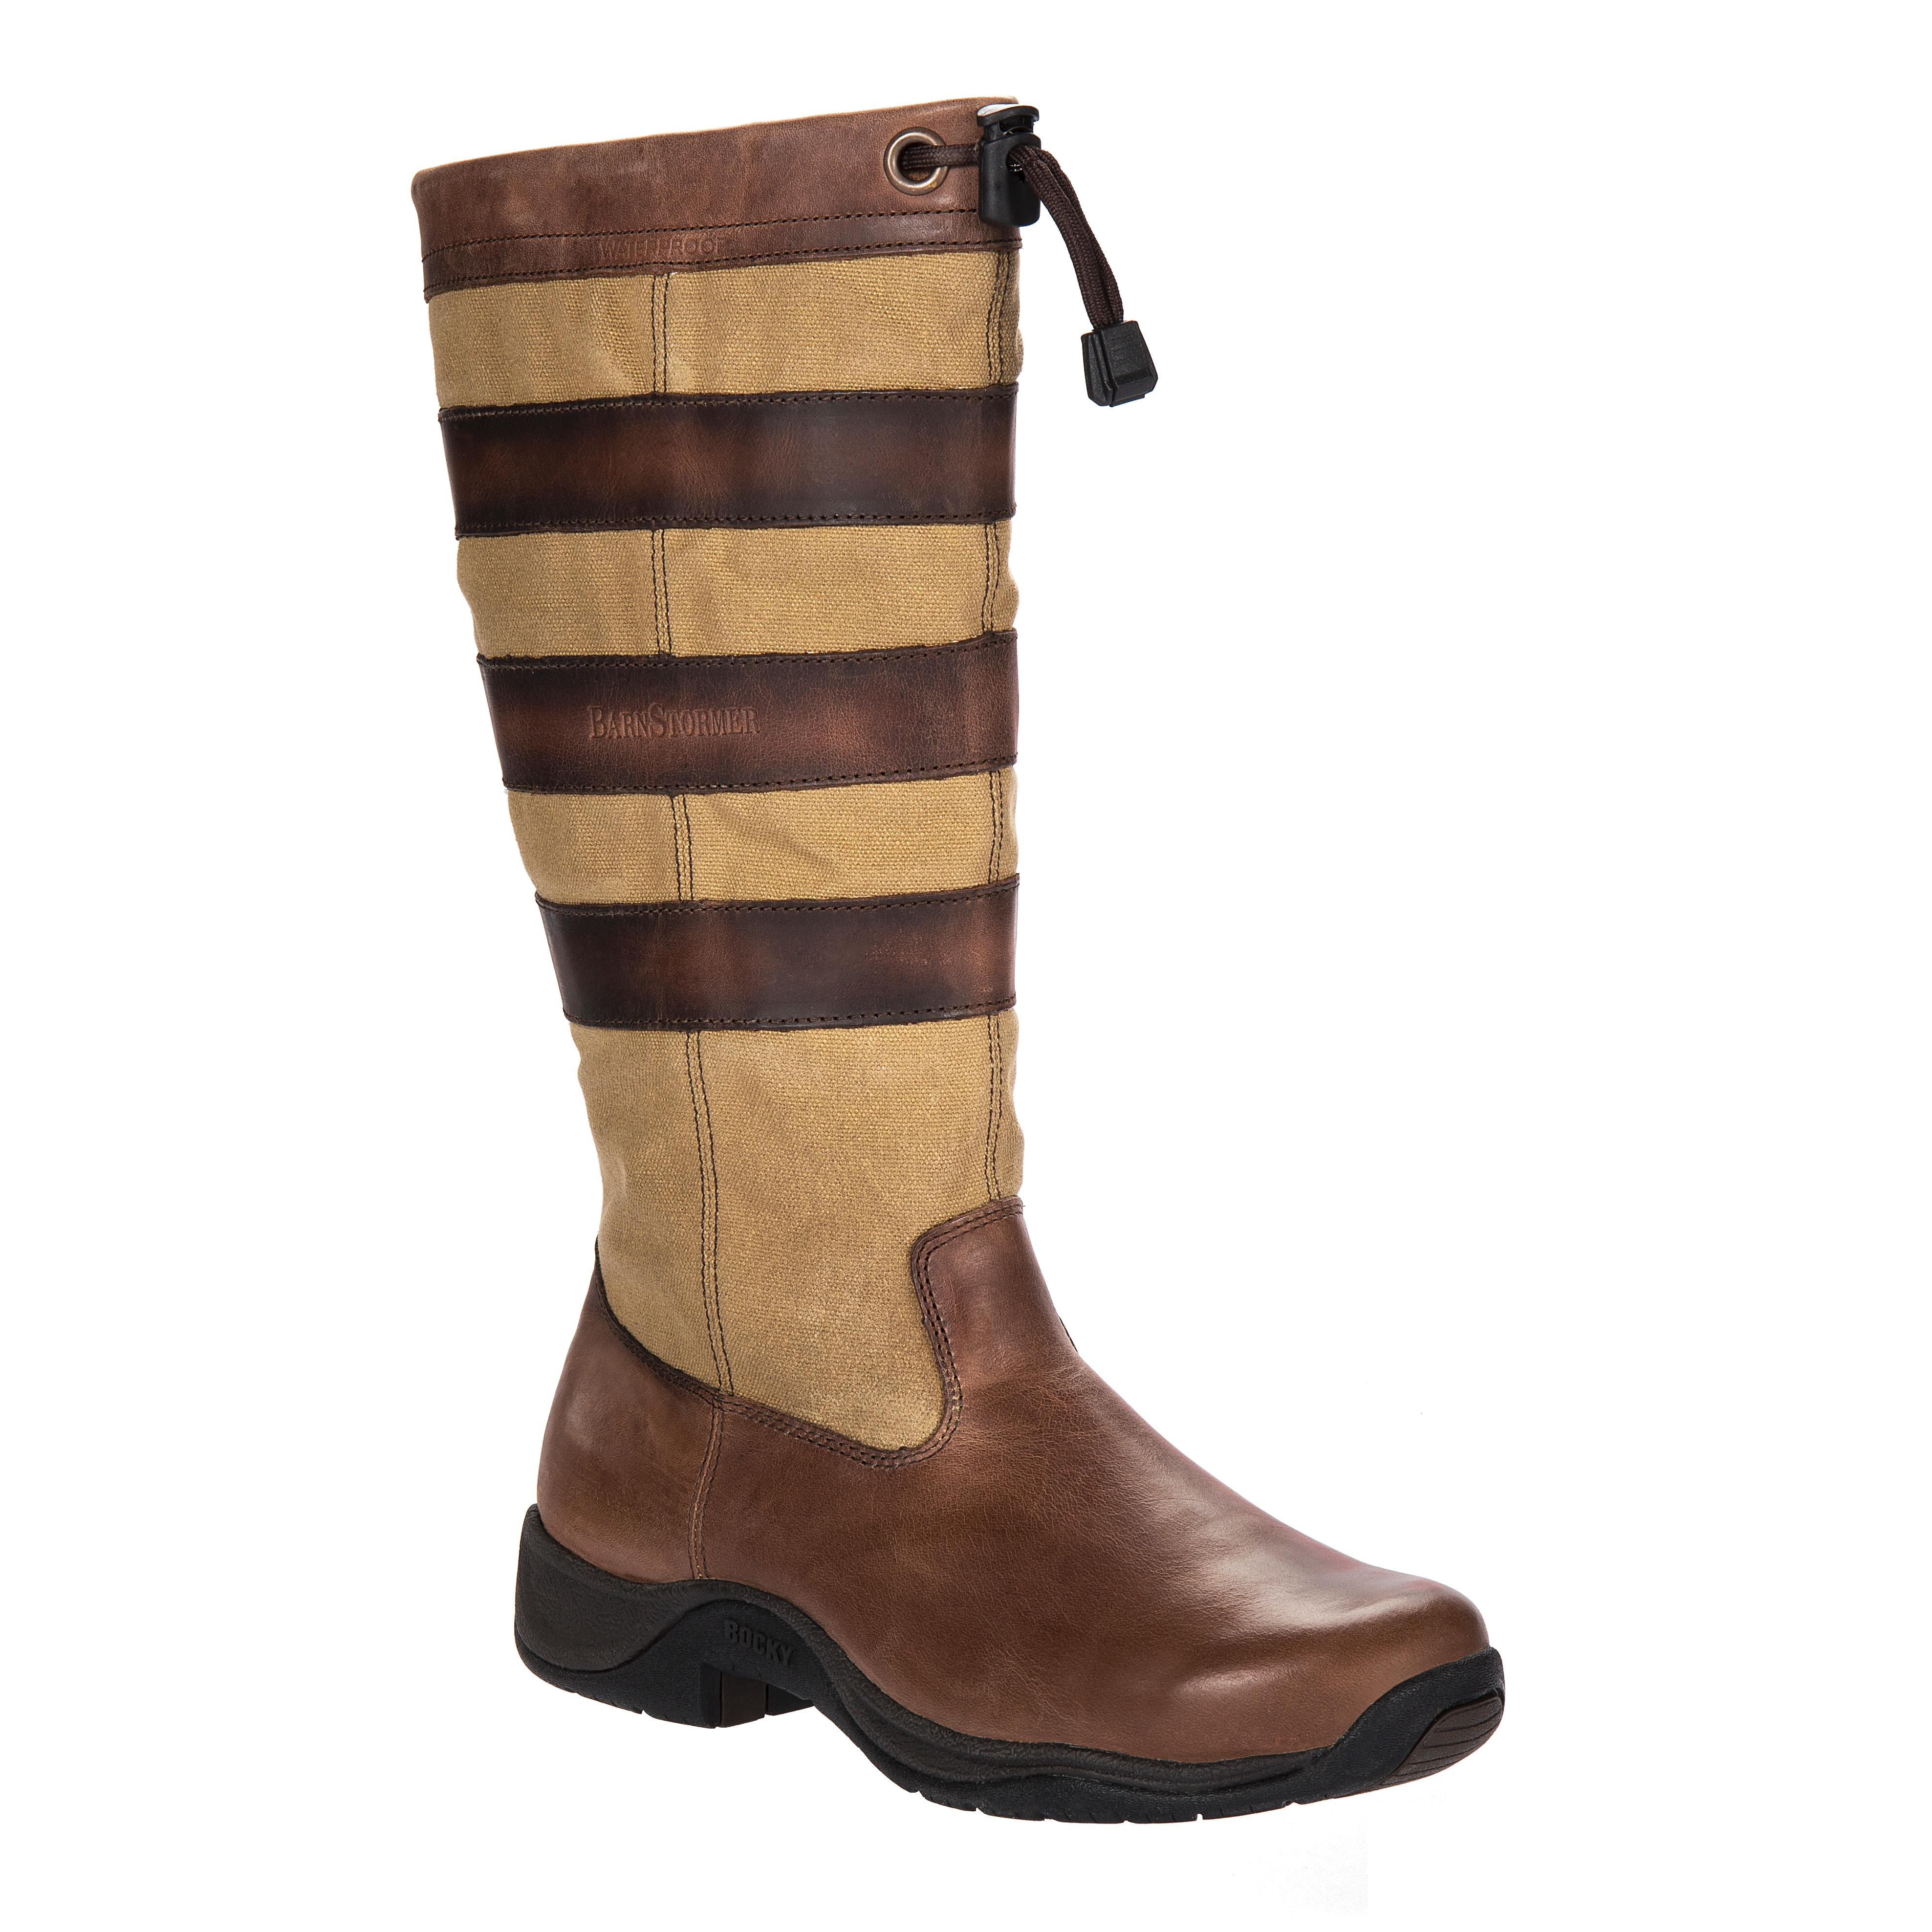 rocky s barnstormer pull on boots style 5070